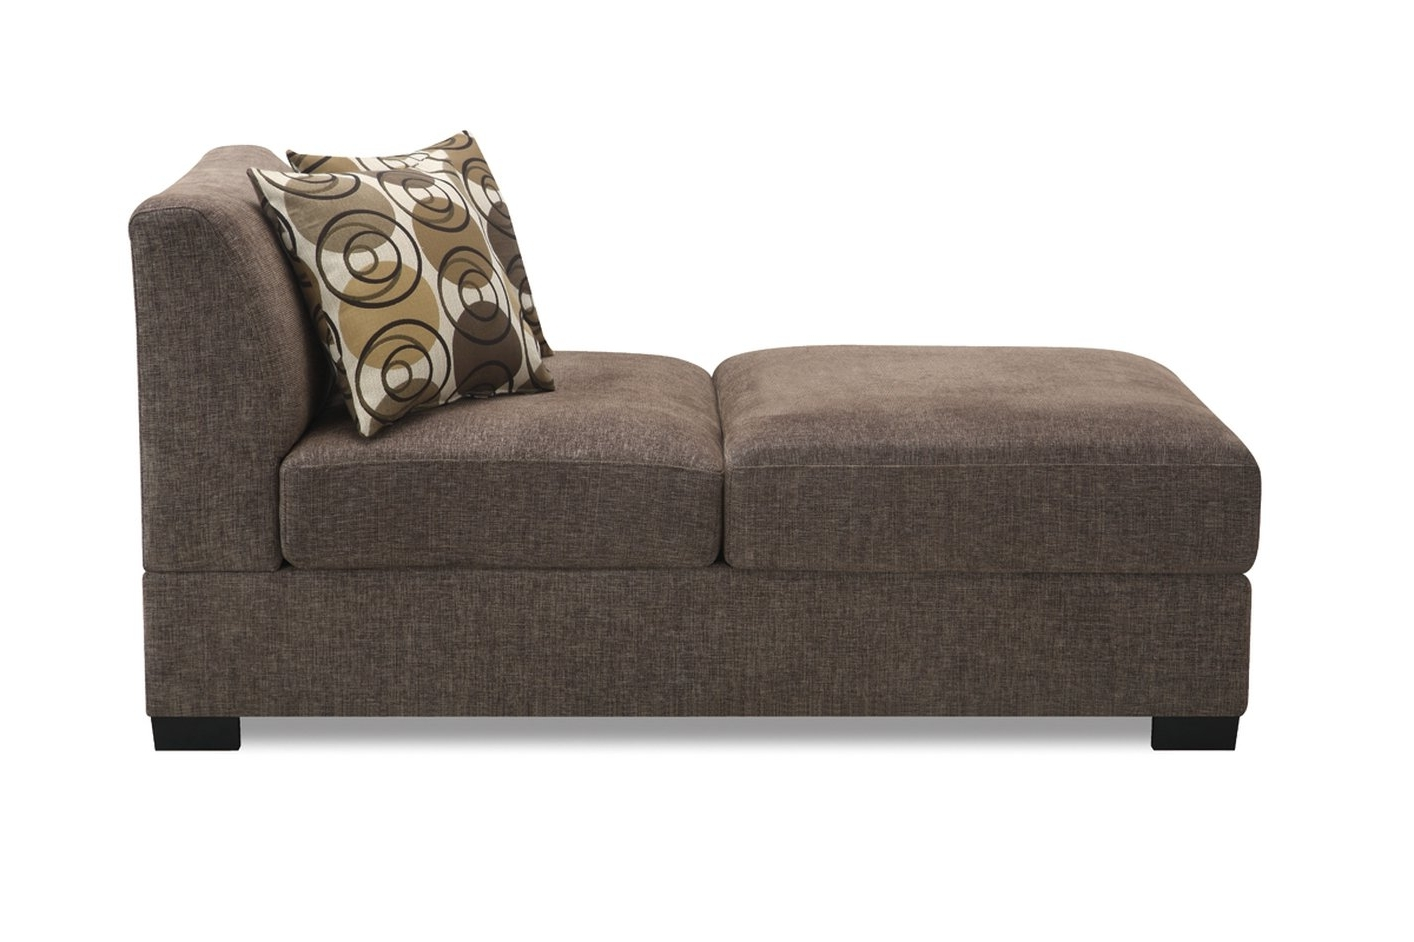 Current Beige Fabric Chaise Lounge – Steal A Sofa Furniture Outlet Los Pertaining To Beige Chaise Lounges (View 14 of 15)